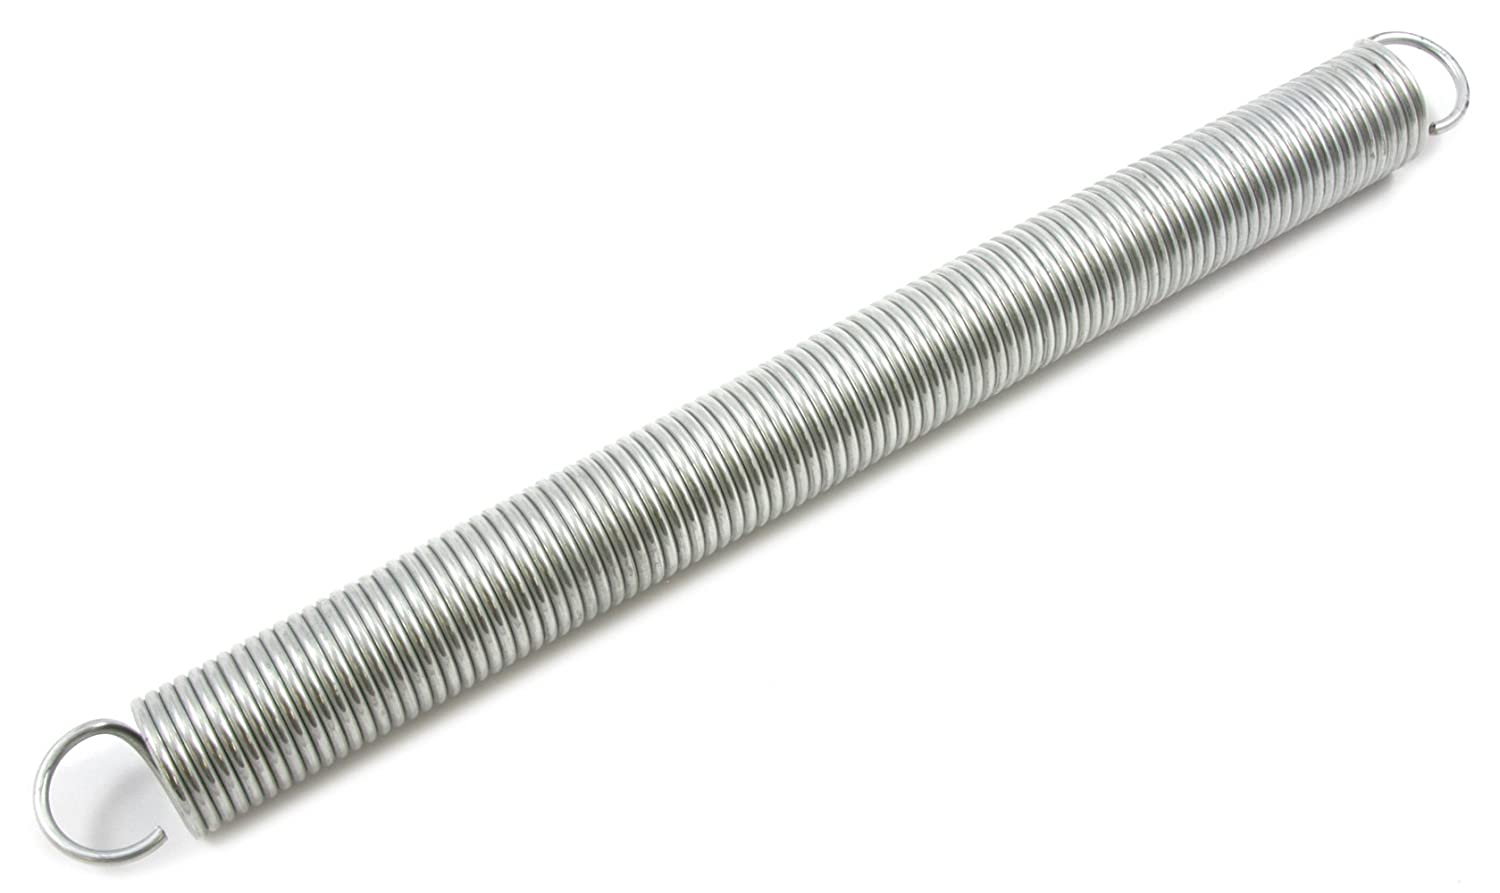 Forney 72584 Wire Spring Extension 10-303, 1-Inch by 12-Inch by .105-Inch Forney Industries